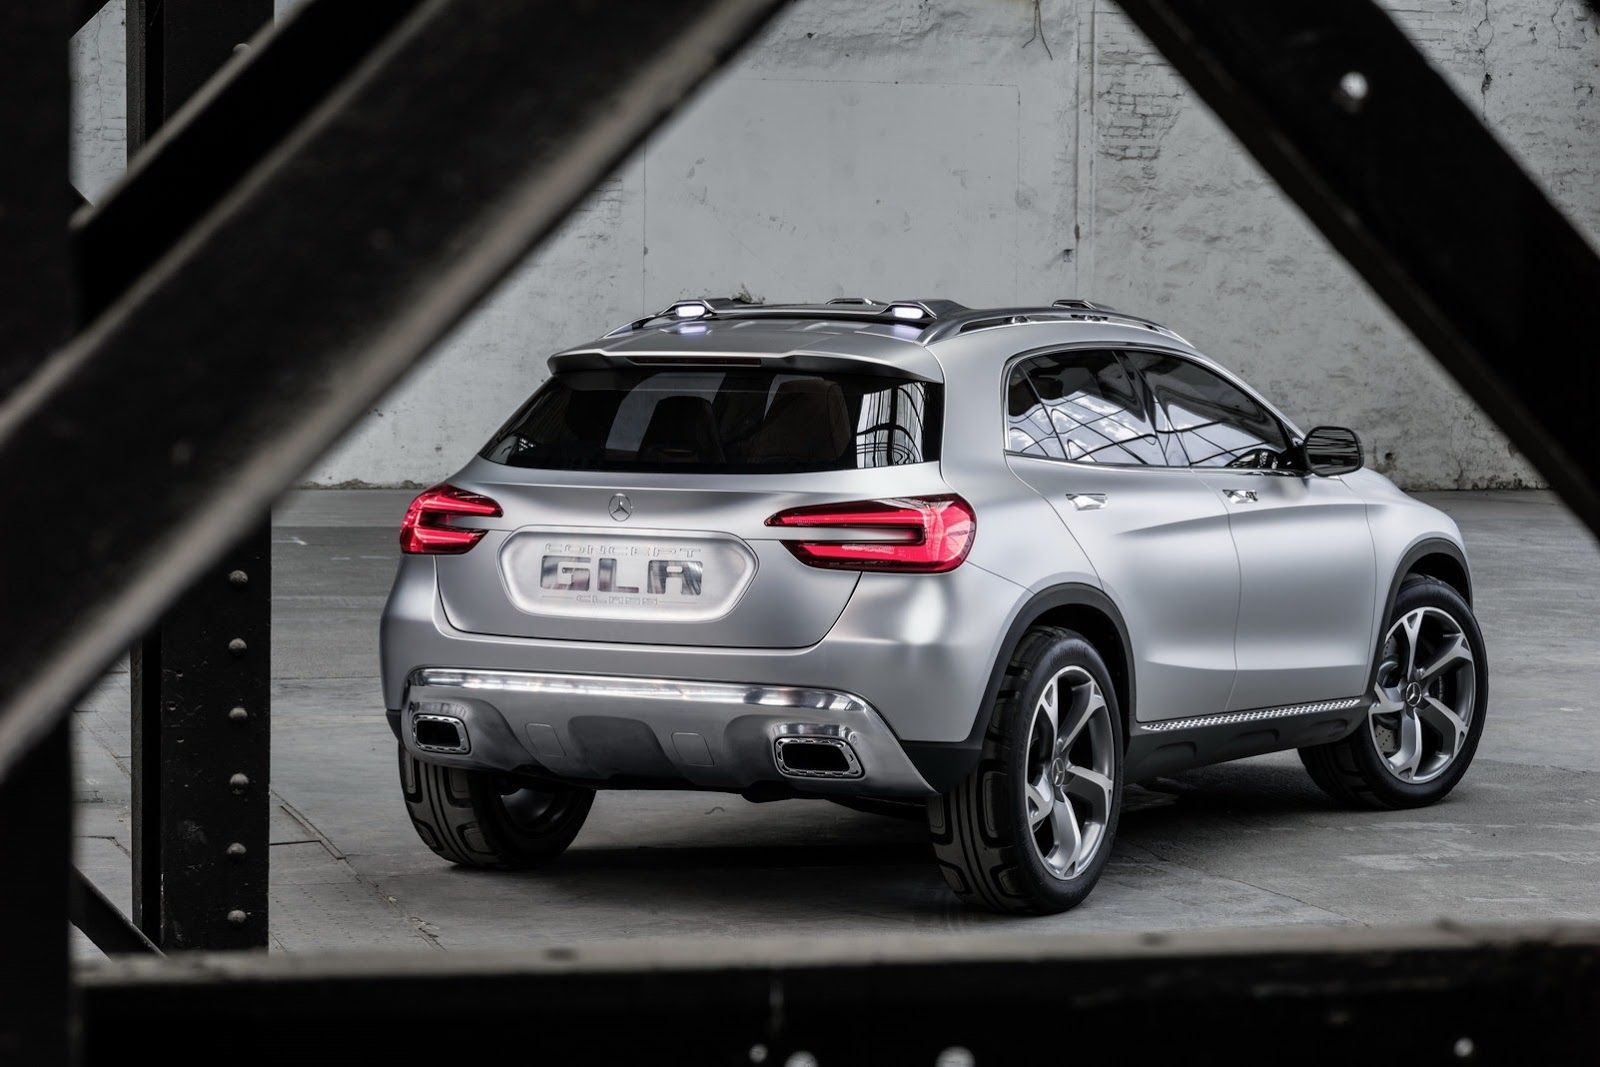 Mercedes Benz Officially Reveals New Gla Compact Crossover Study